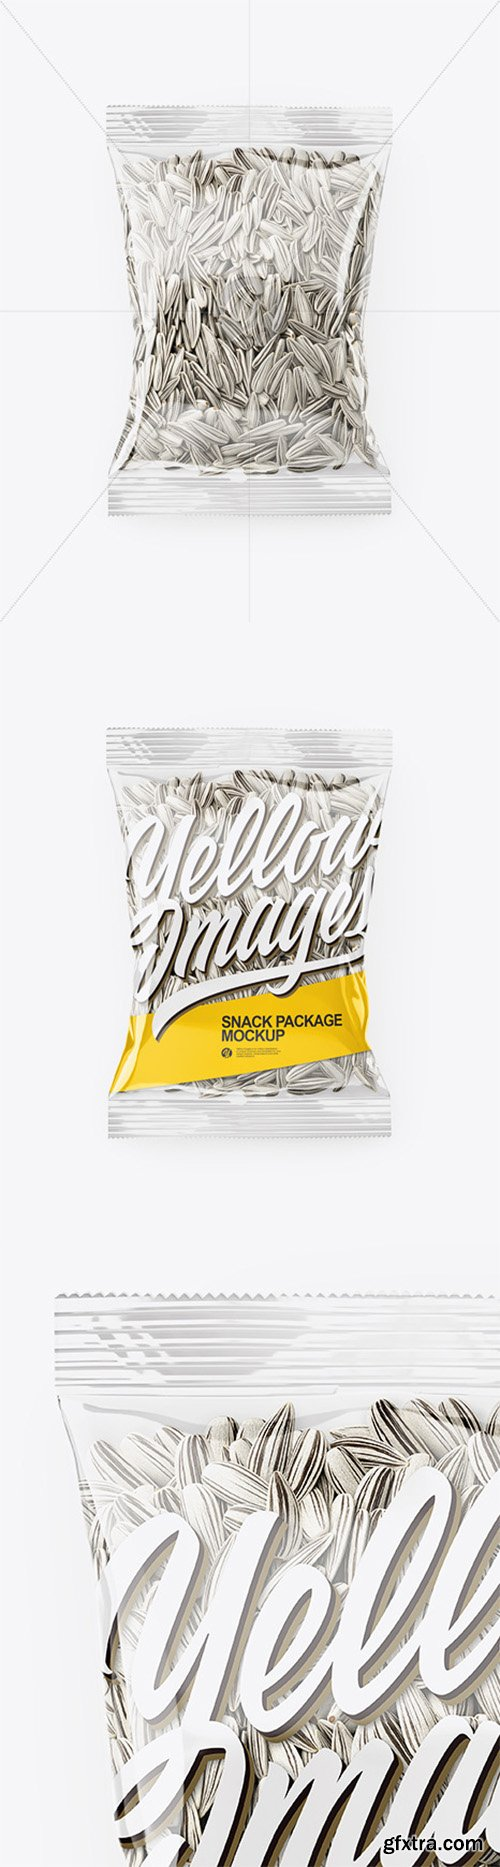 Clear Transparent Plastic Pack with White Sunflower Seeds Mockup - Top View 65863